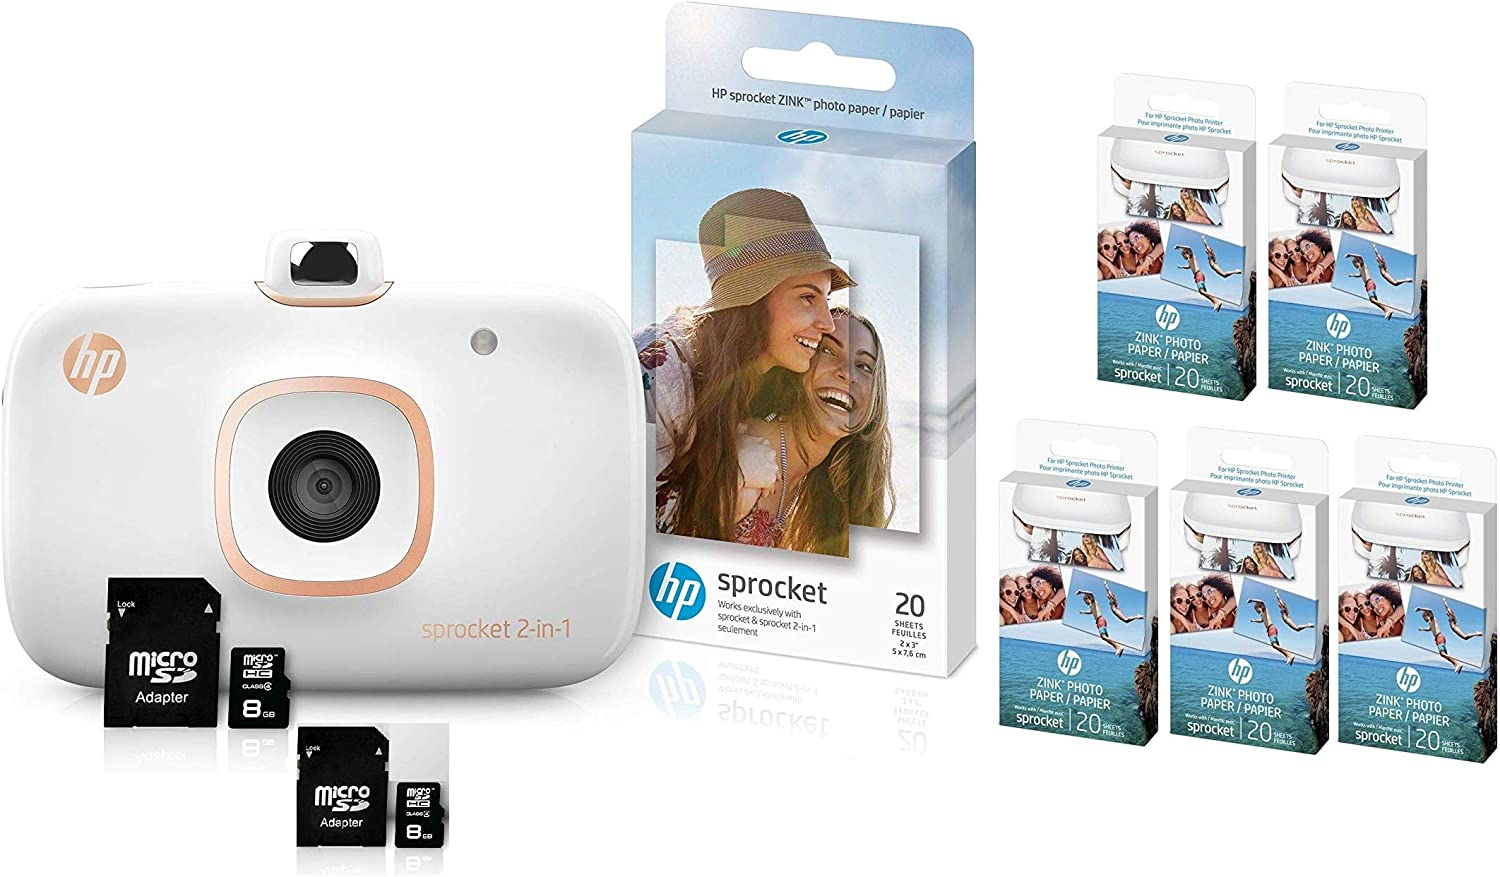 HP Sprocket 2-in-1 Portable Photo Printer & Instant Camera Bundle with Two: 8GB MicroSD Cards & Zink Photo Paper Bundle (120 Sheets, White)